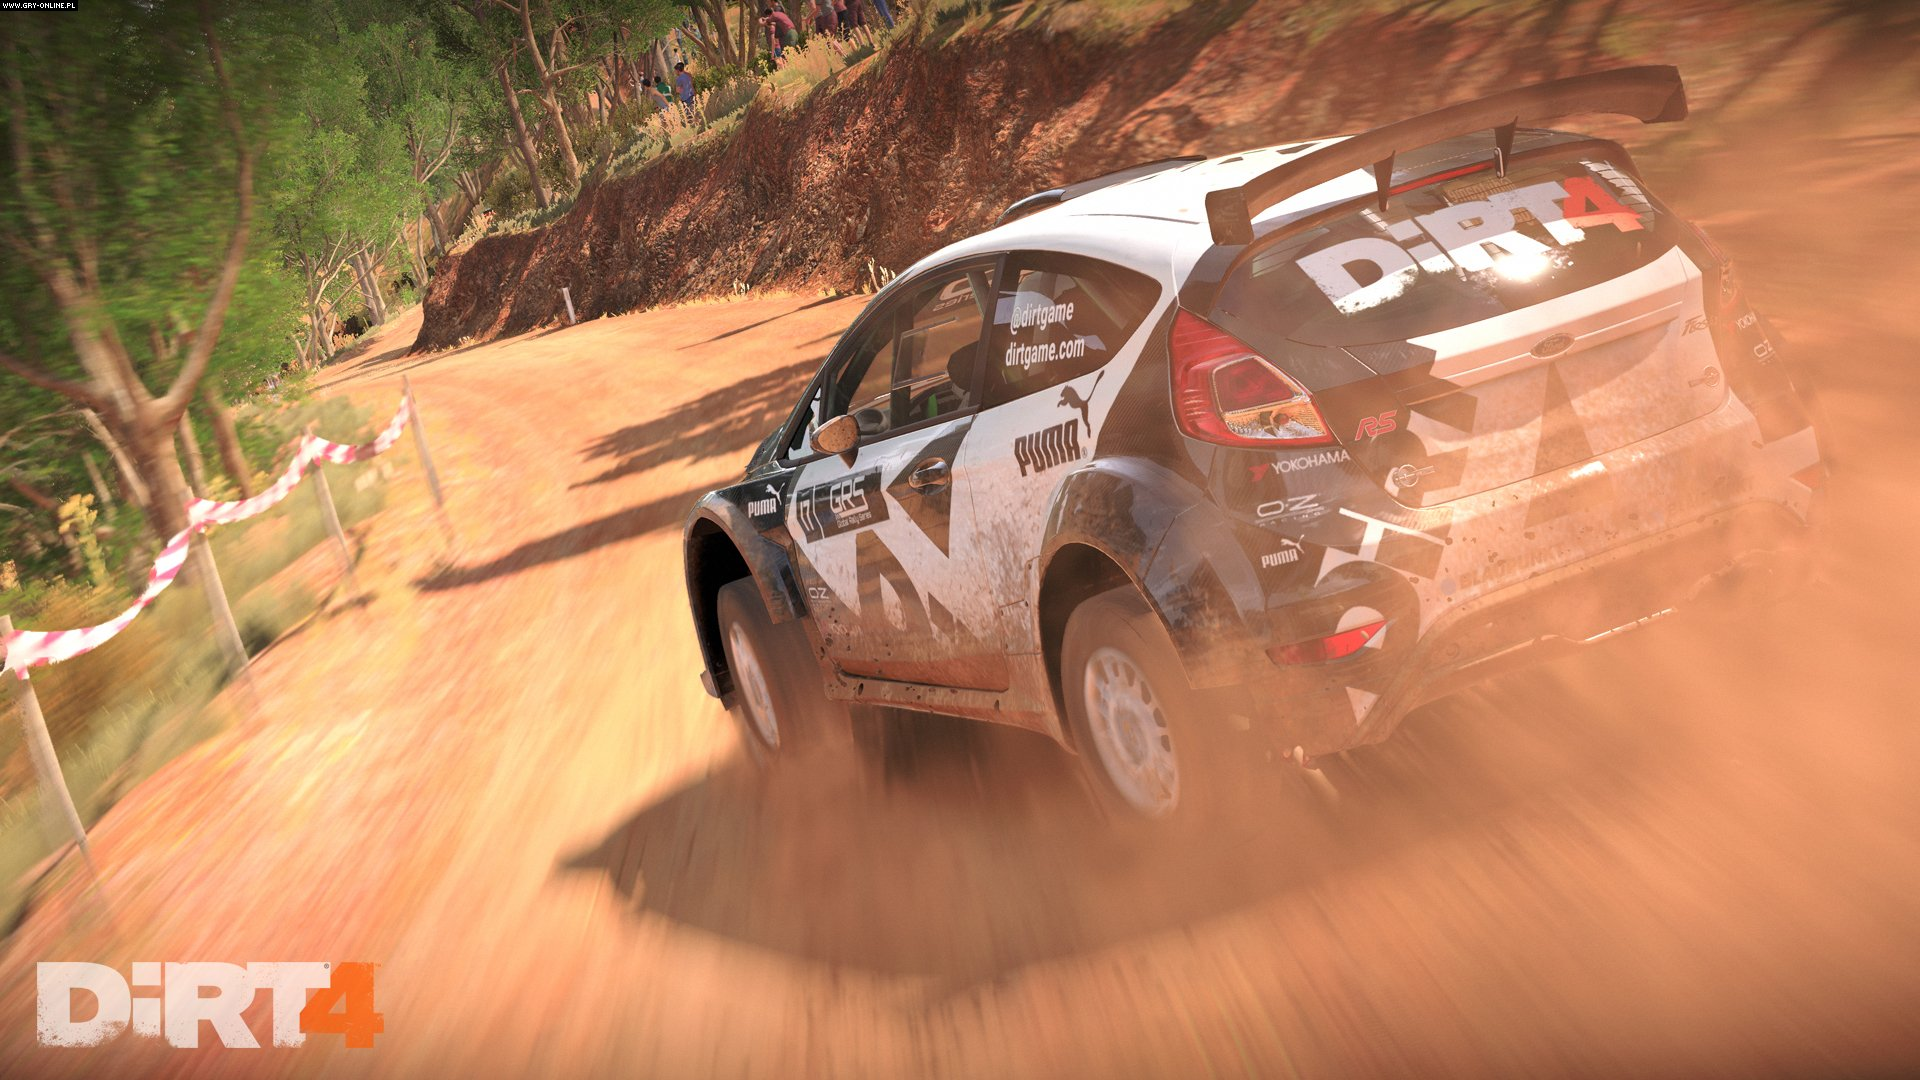 DiRT 4 PC, PS4, XONE Games Image 17/20, Codemasters Software